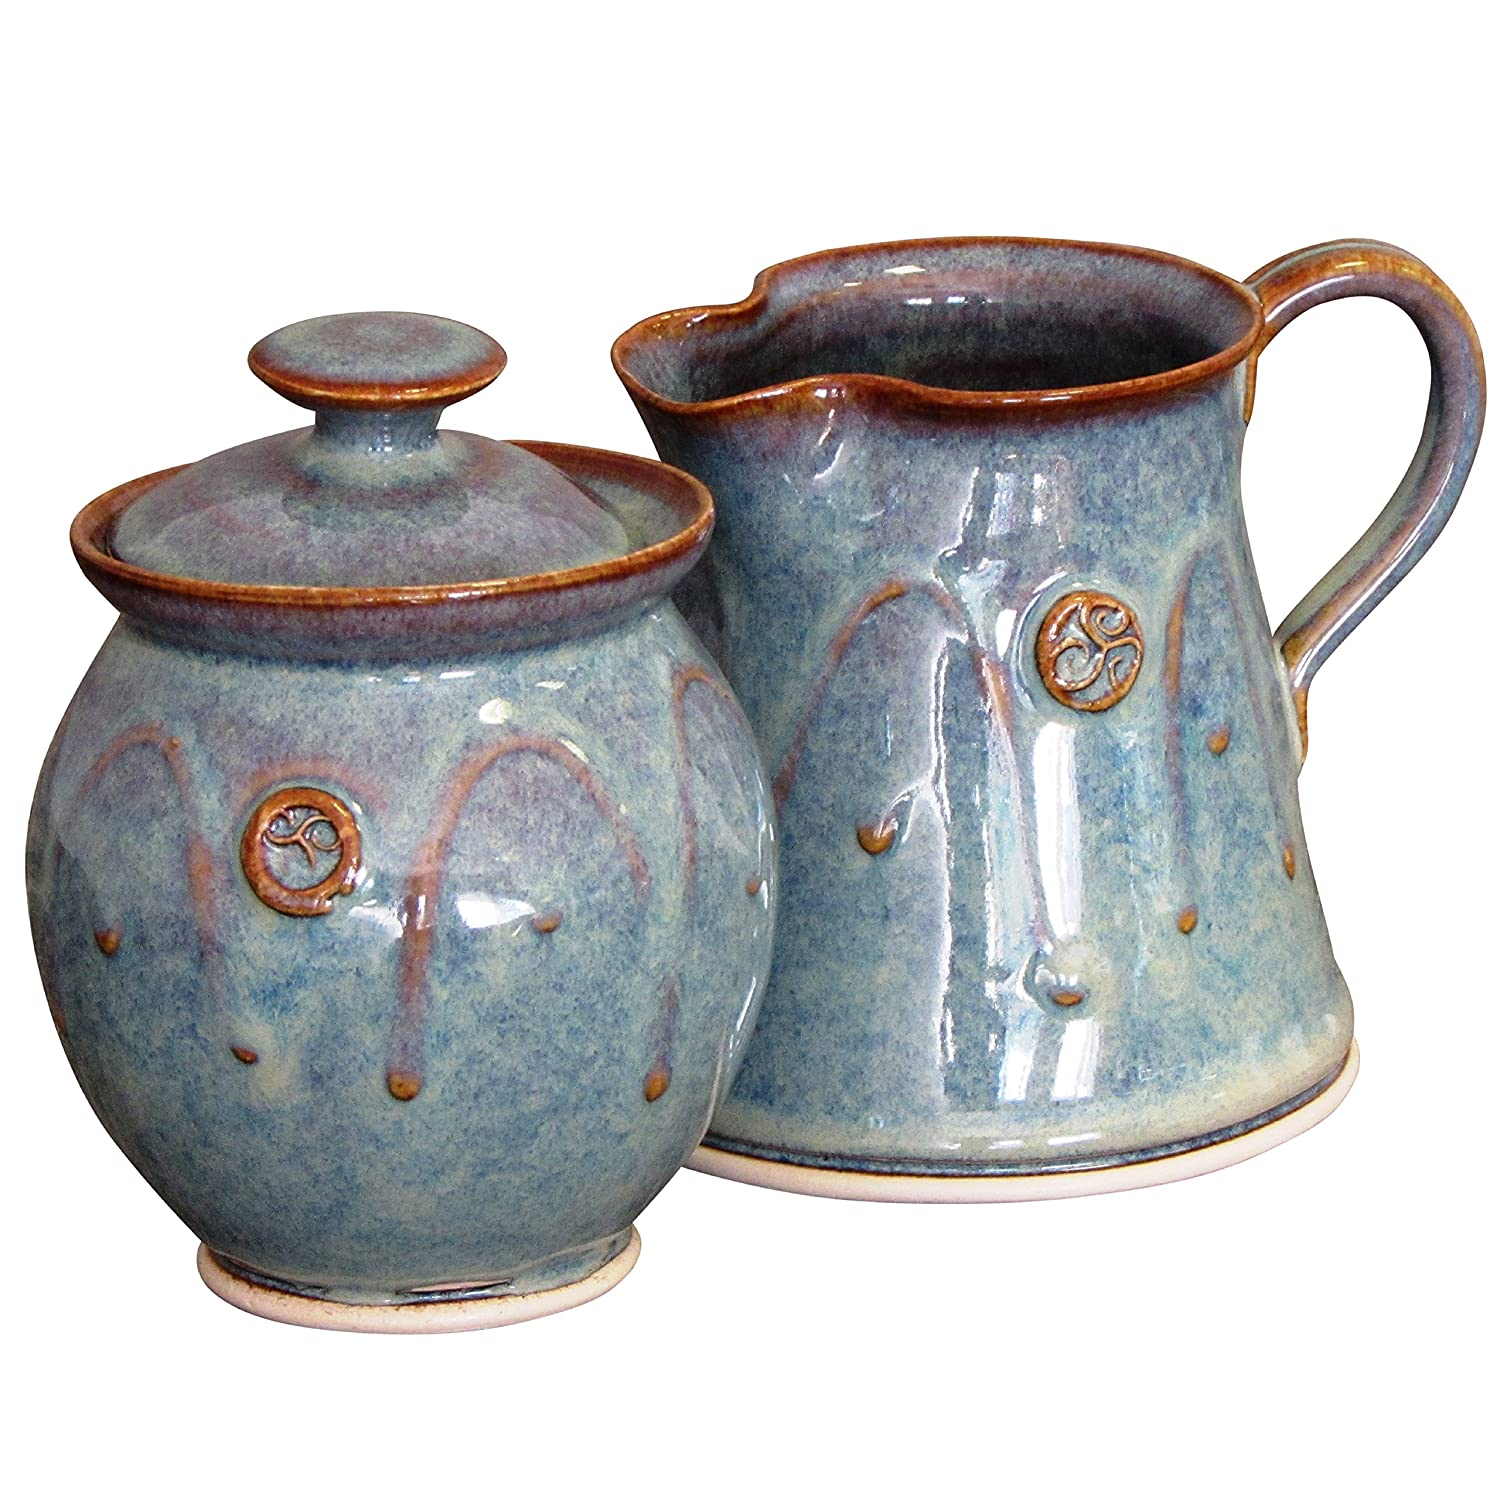 Amazon.com | Handmade Irish Pottery Sugar and Creamer Set: Cream ...